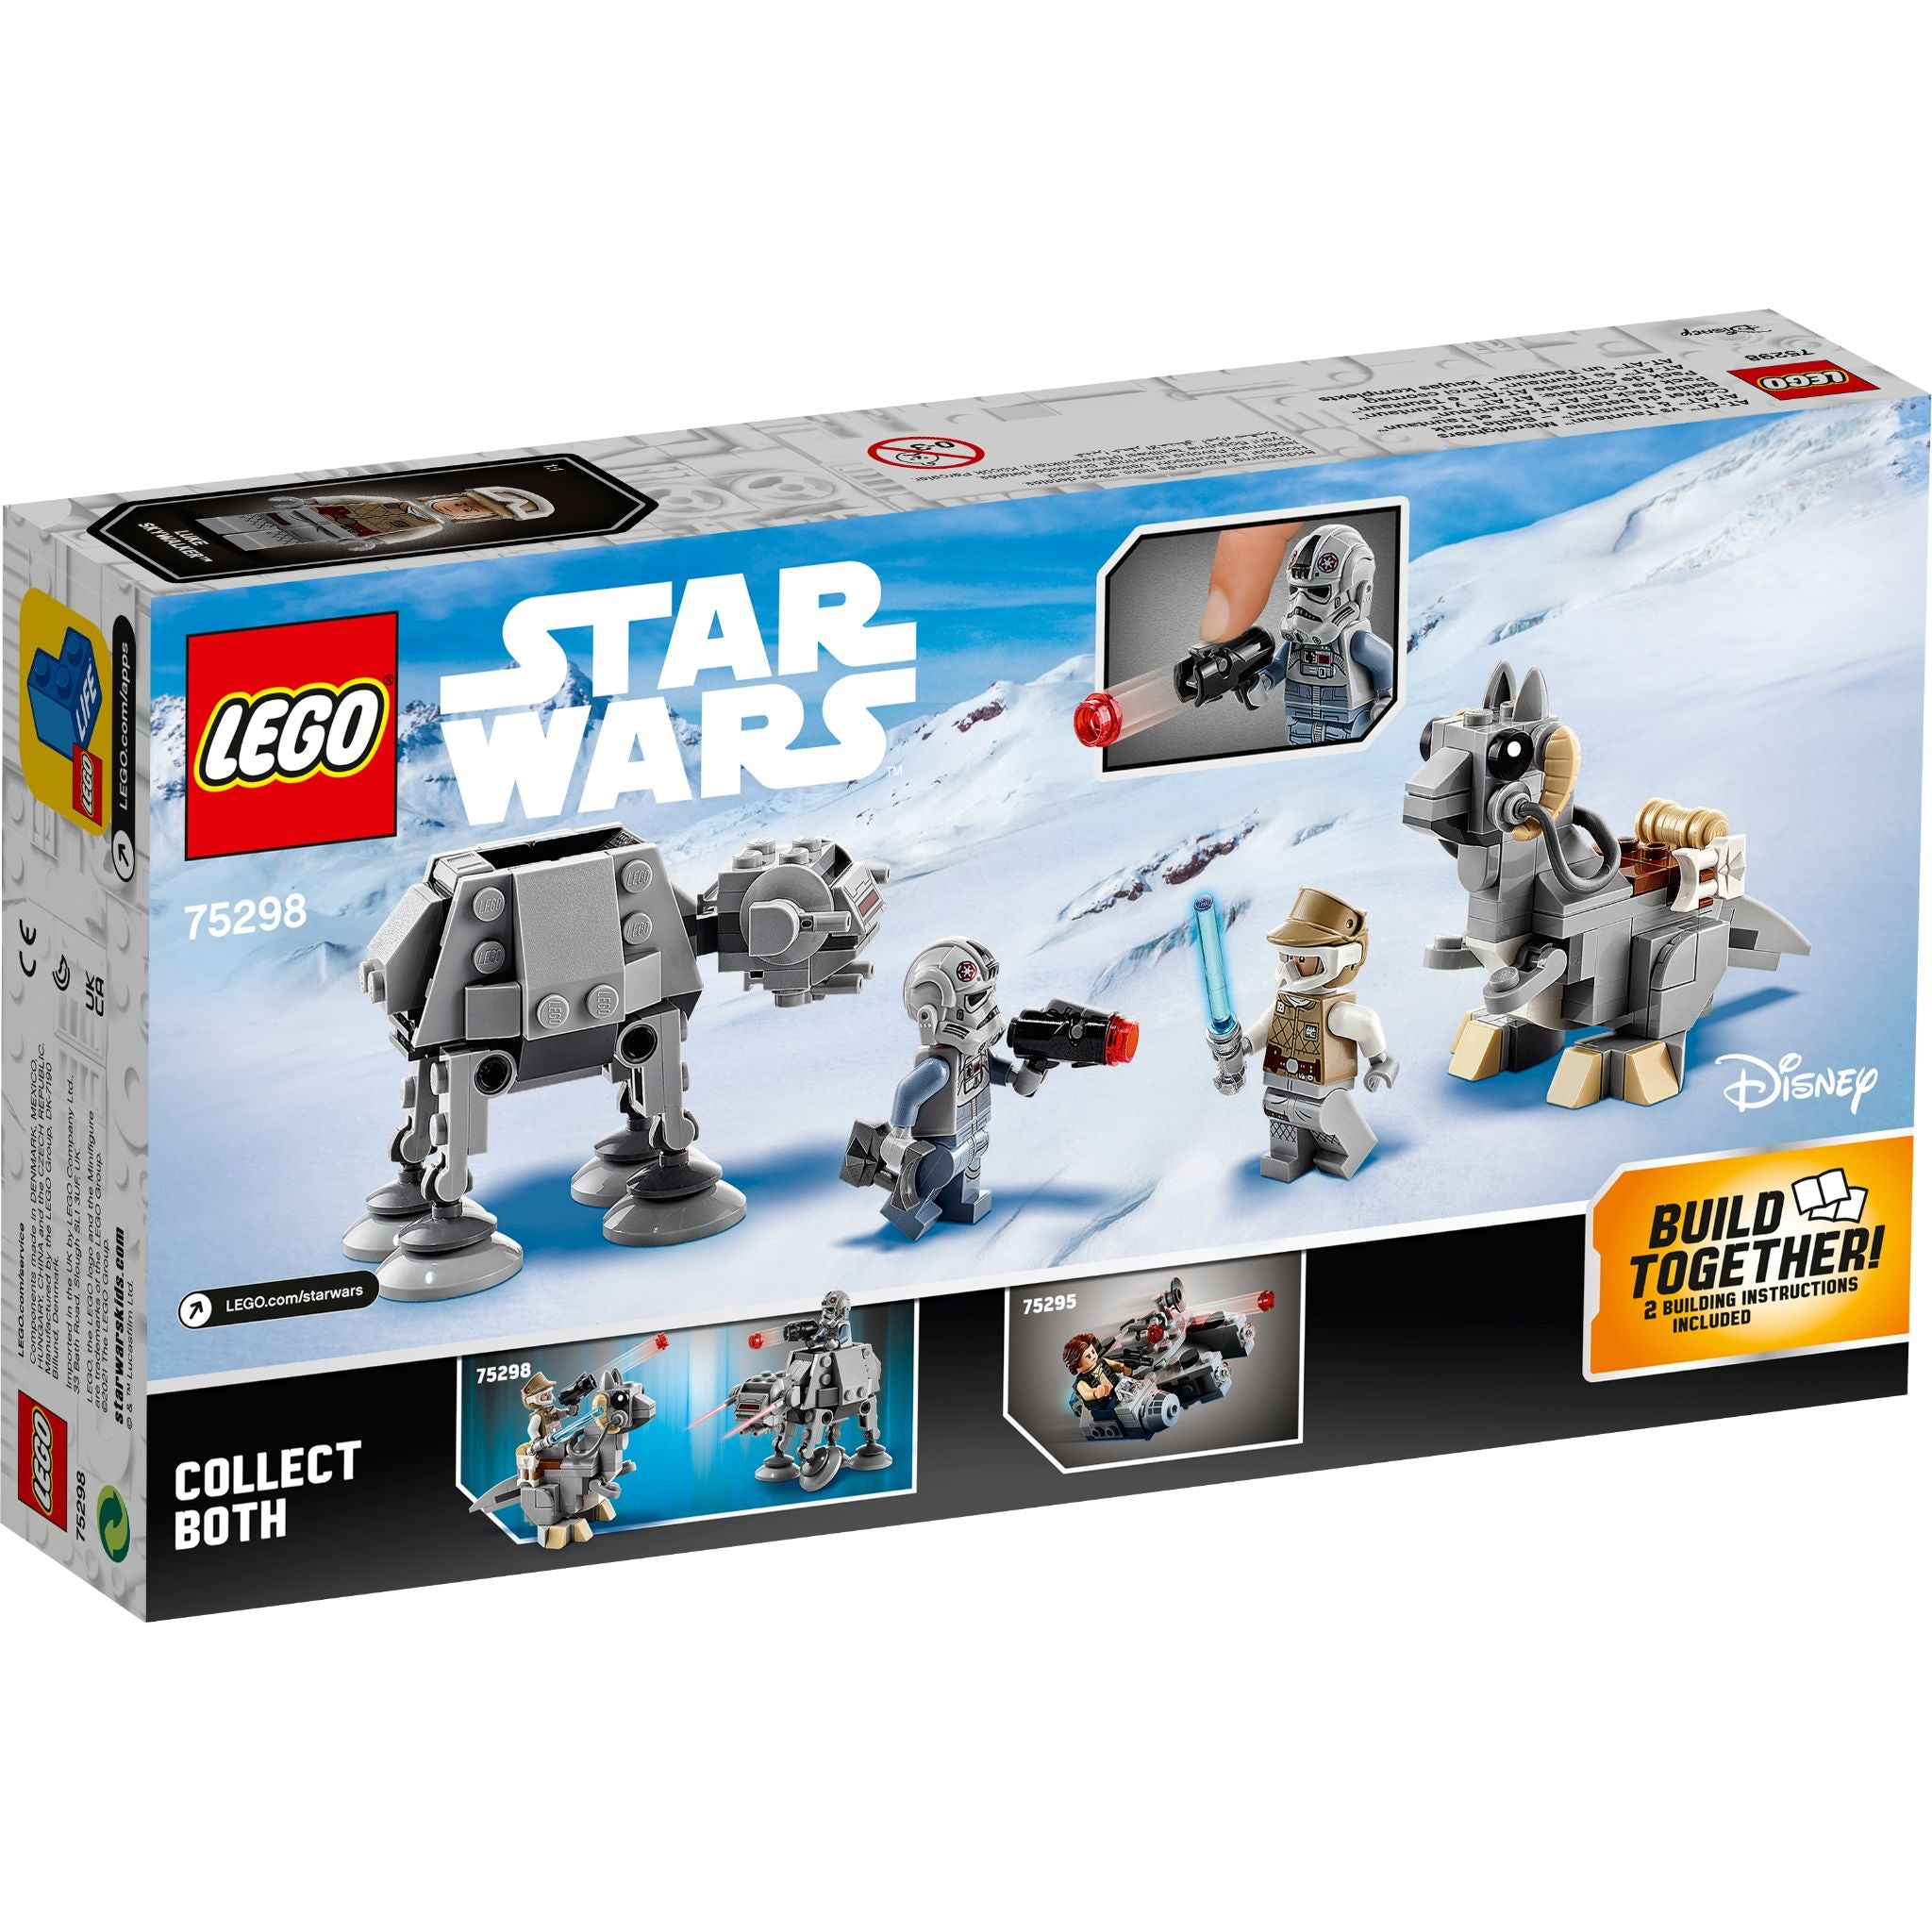 LEGO Star Wars : AT-AT™ vs. Tauntaun™ Microfighters 75298